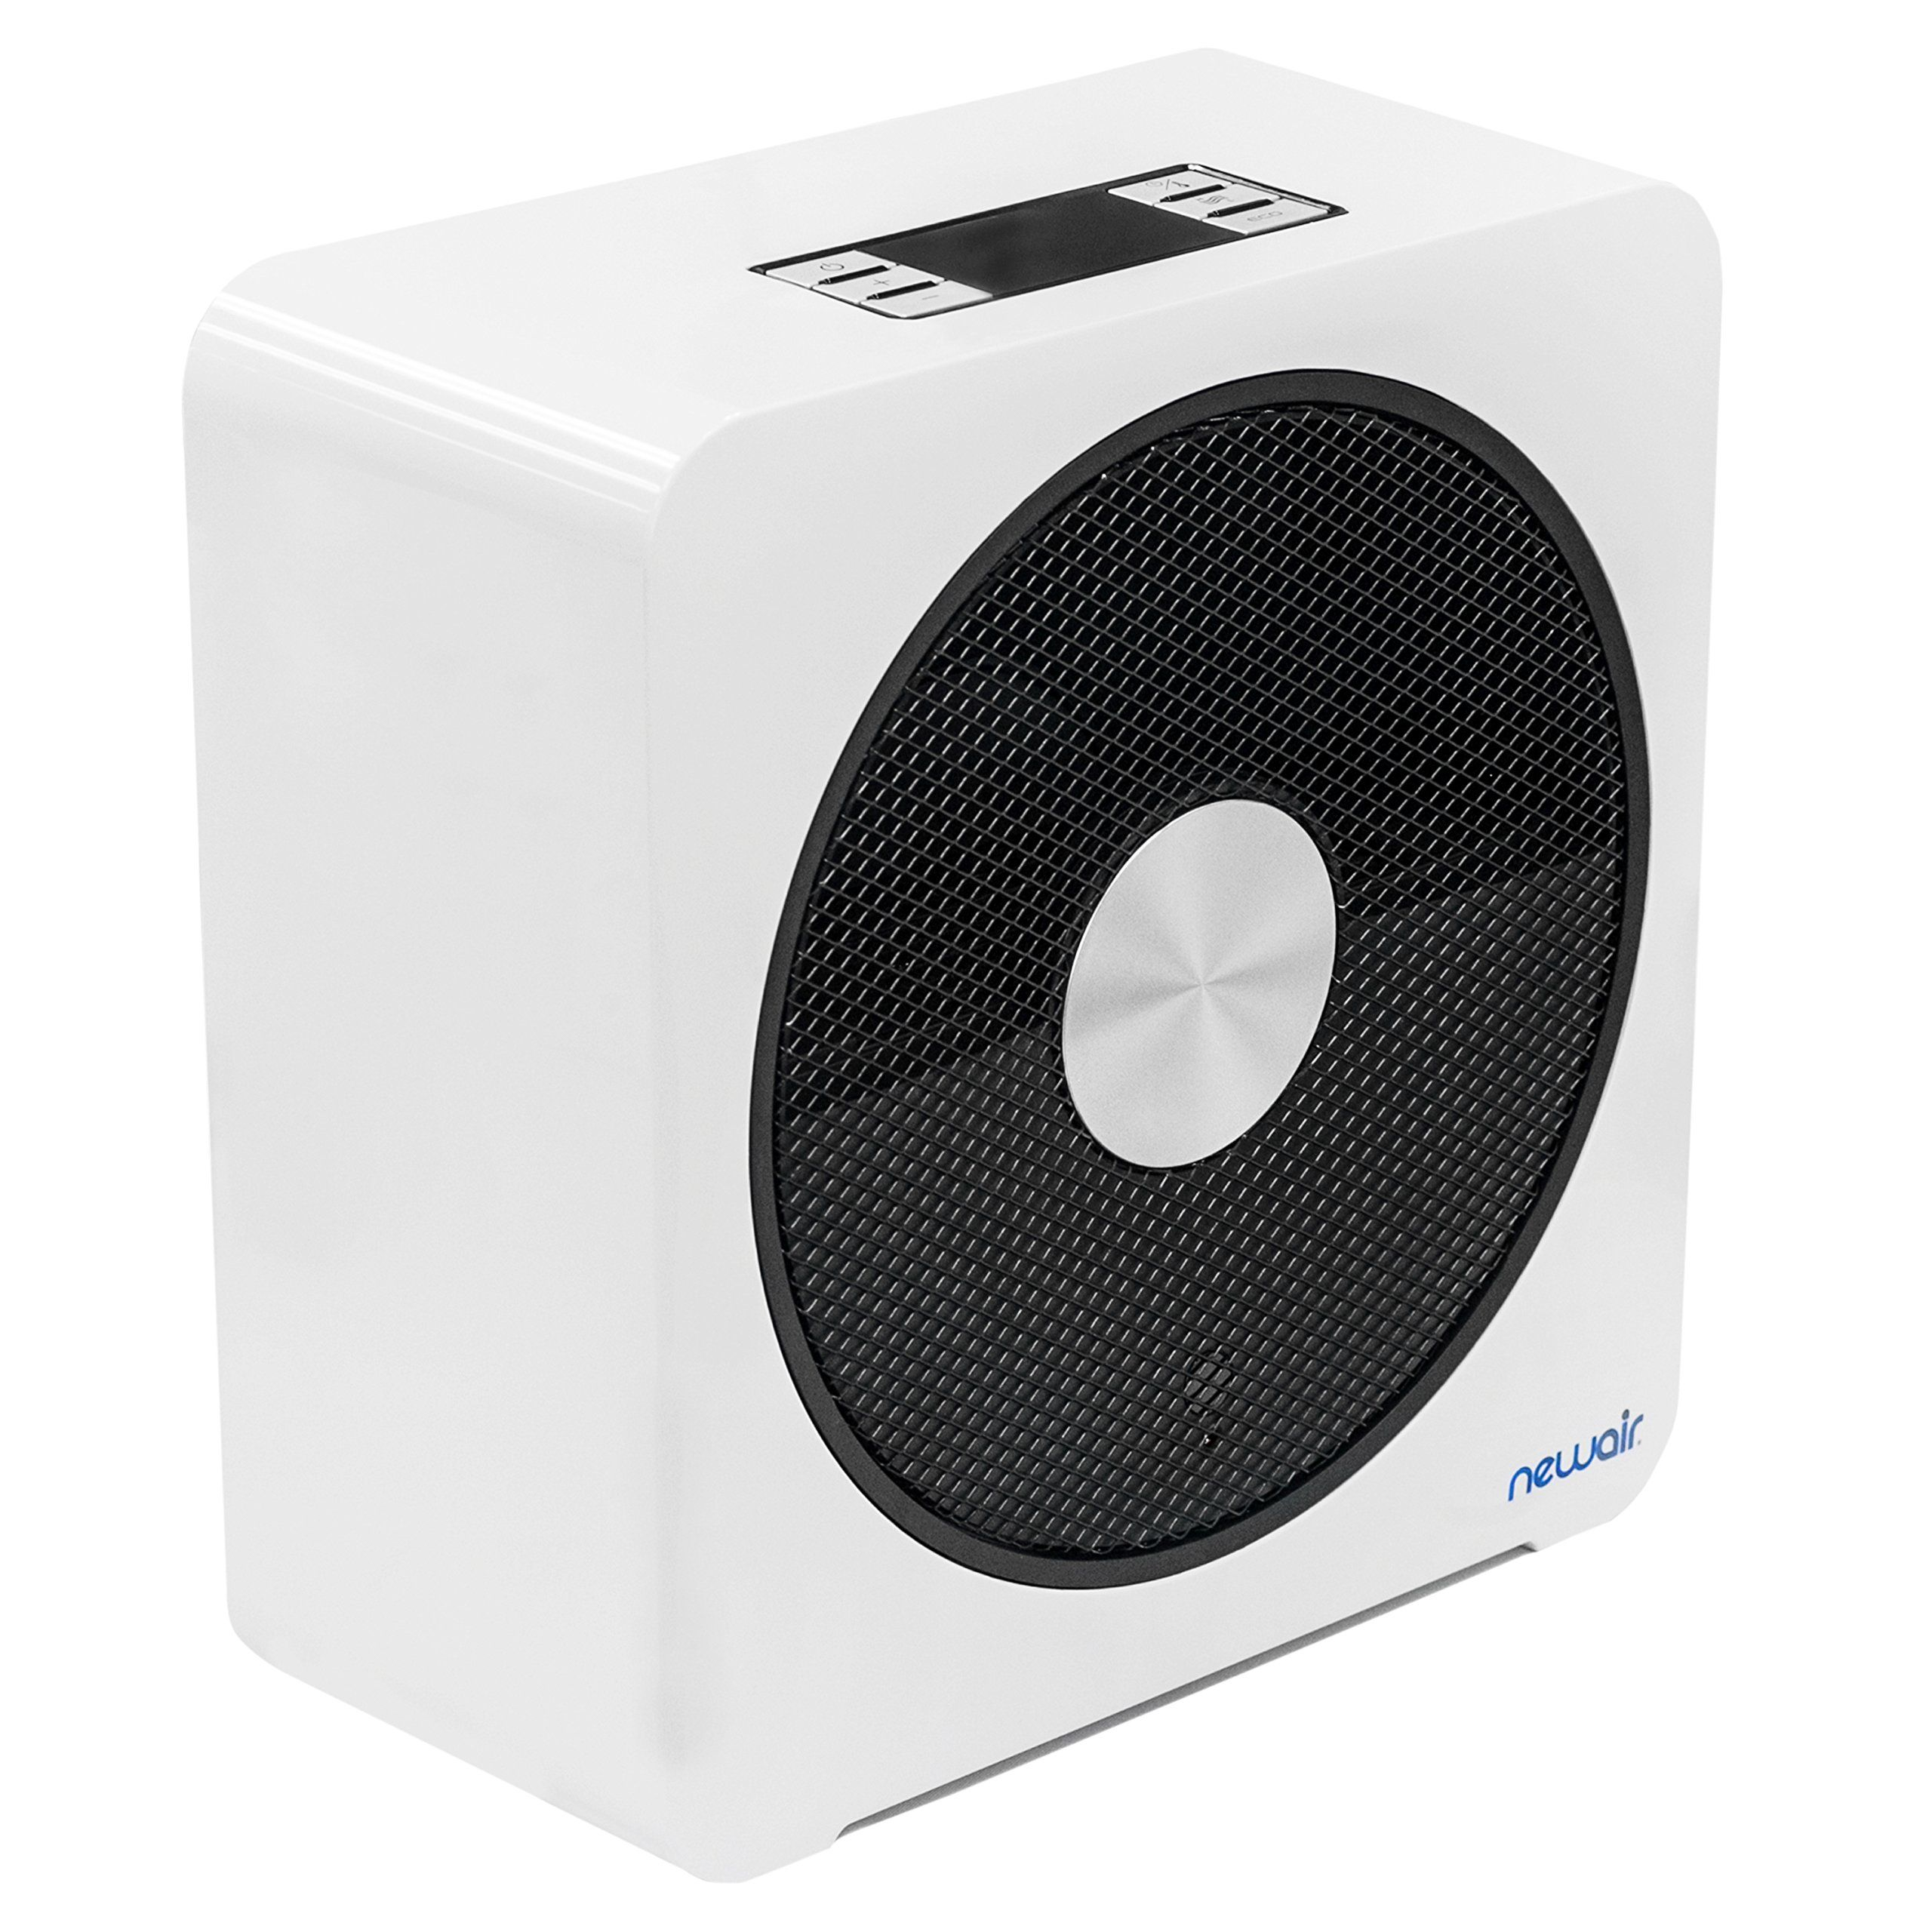 Newair Quietheat15 Portable Ceramic Space Heater 250 Square Feet Of Coverage You Can Find More Details By Visiting The Image Link It Is An Affiliate Link To